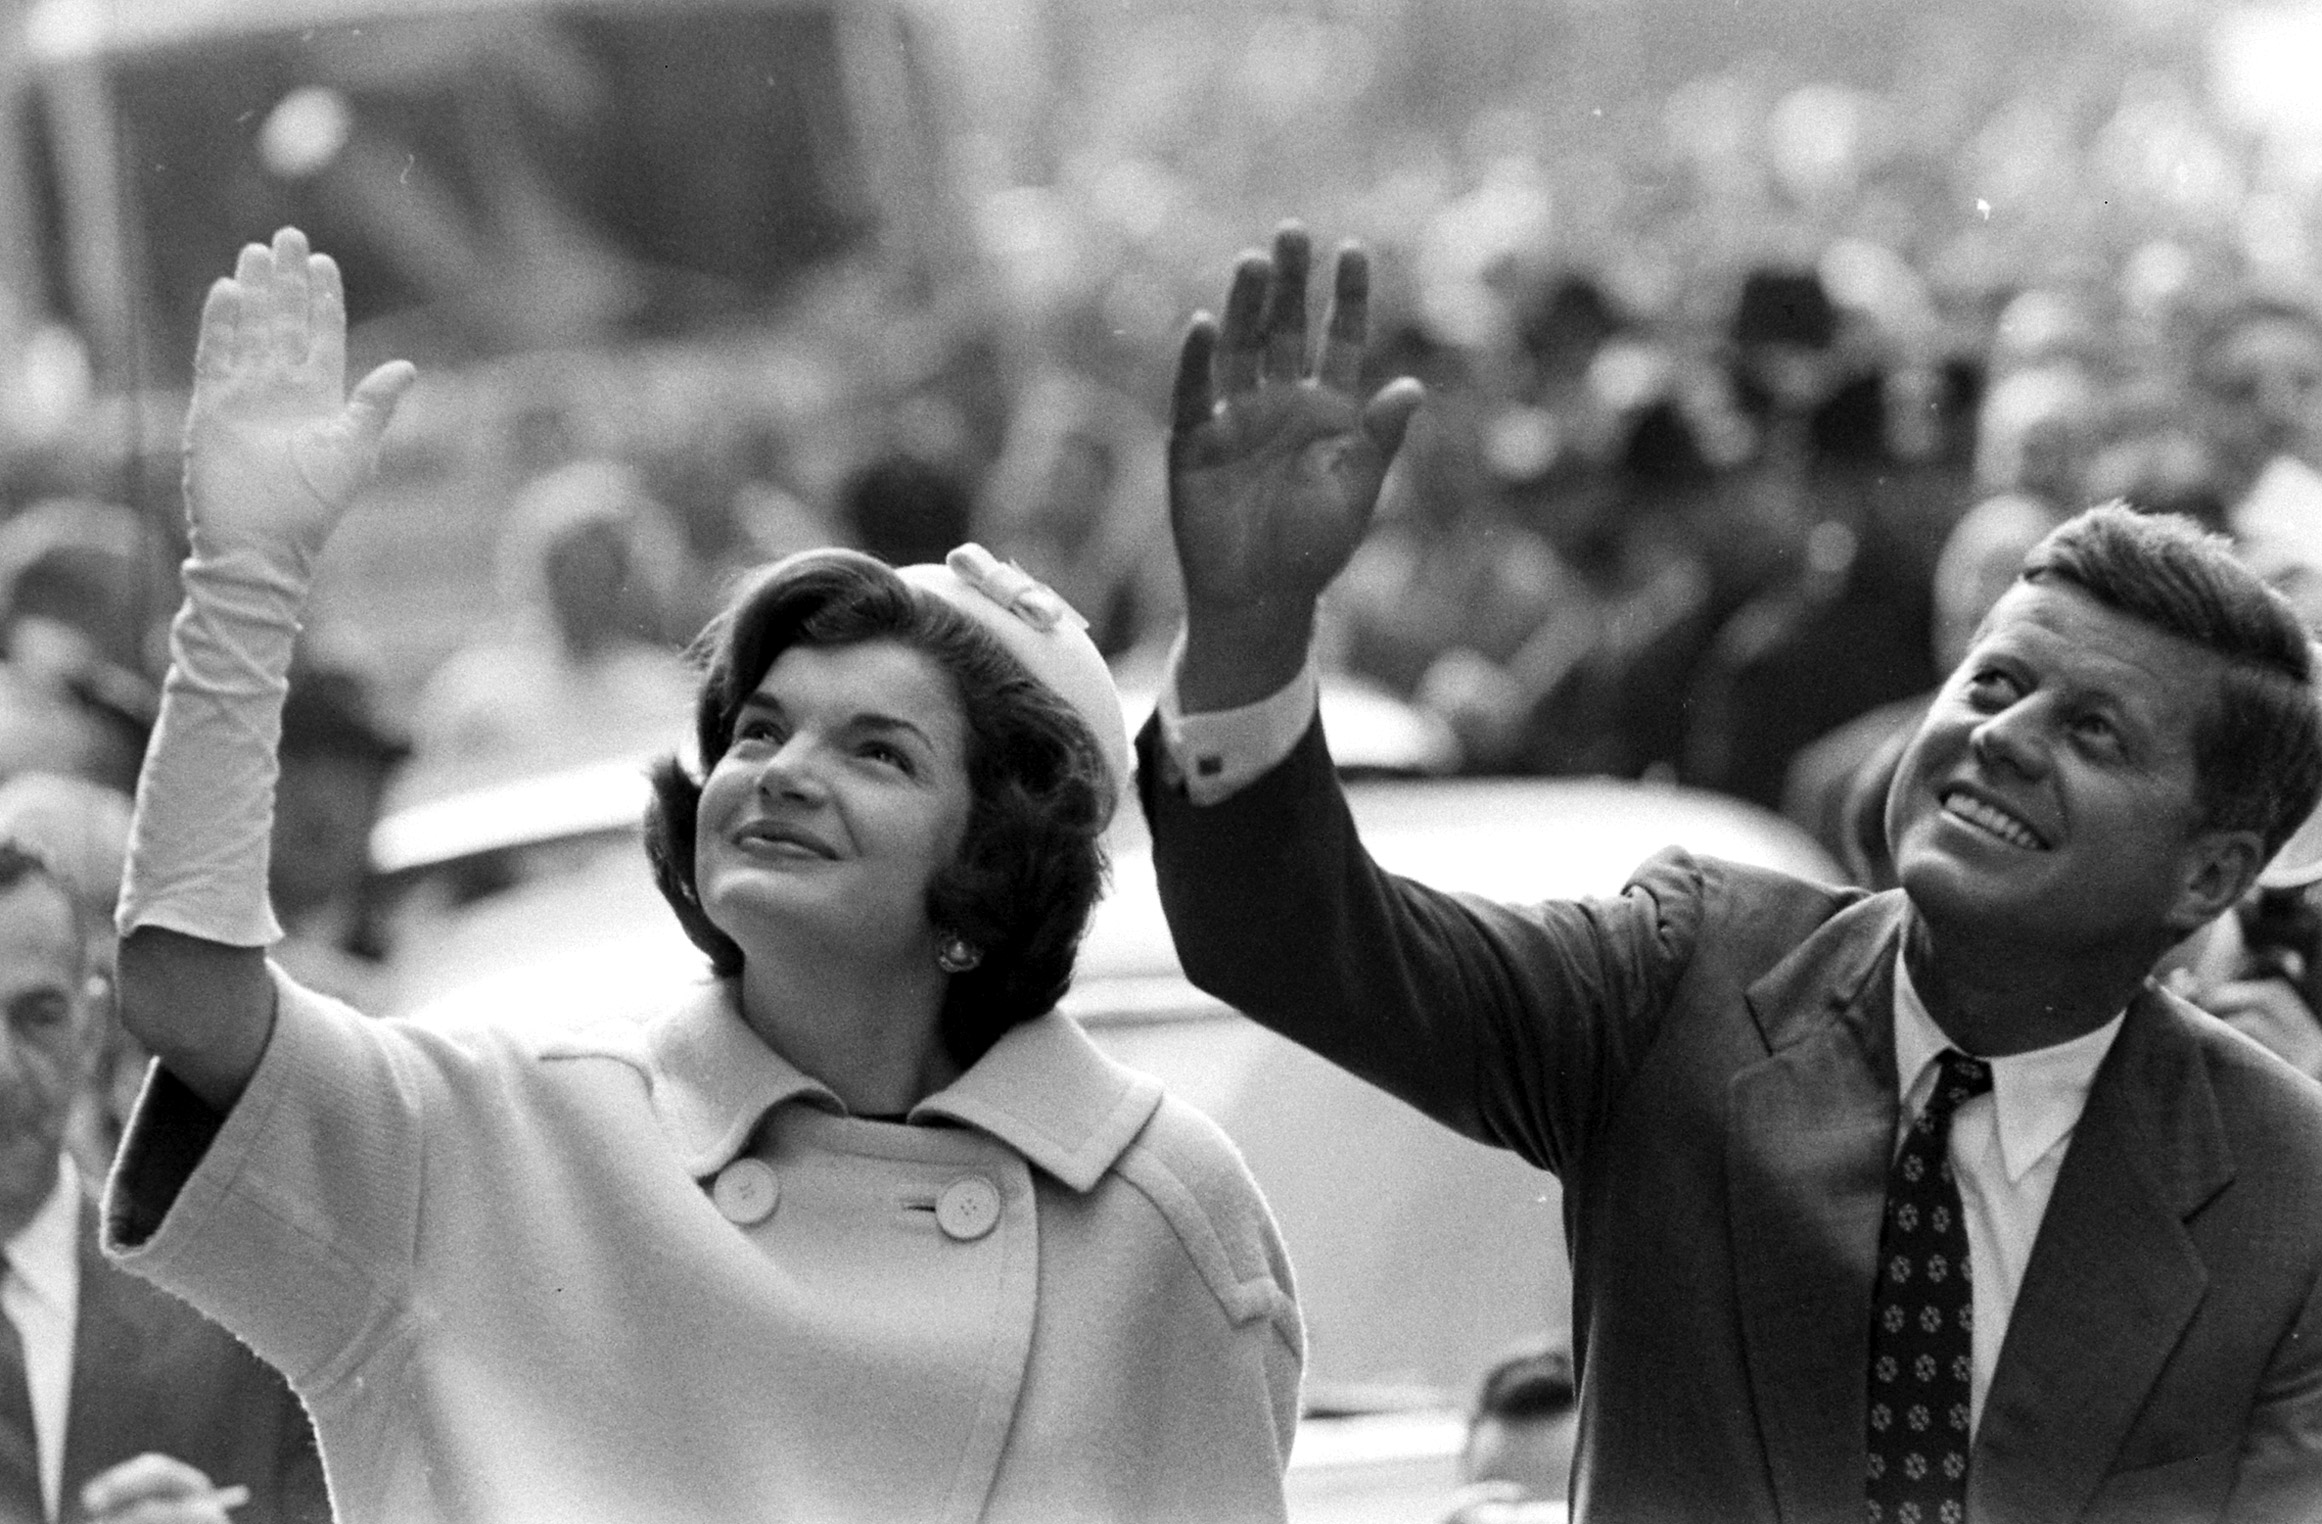 John F. Kennedy and wife Jackie waving to a crowd during campaign appearance.